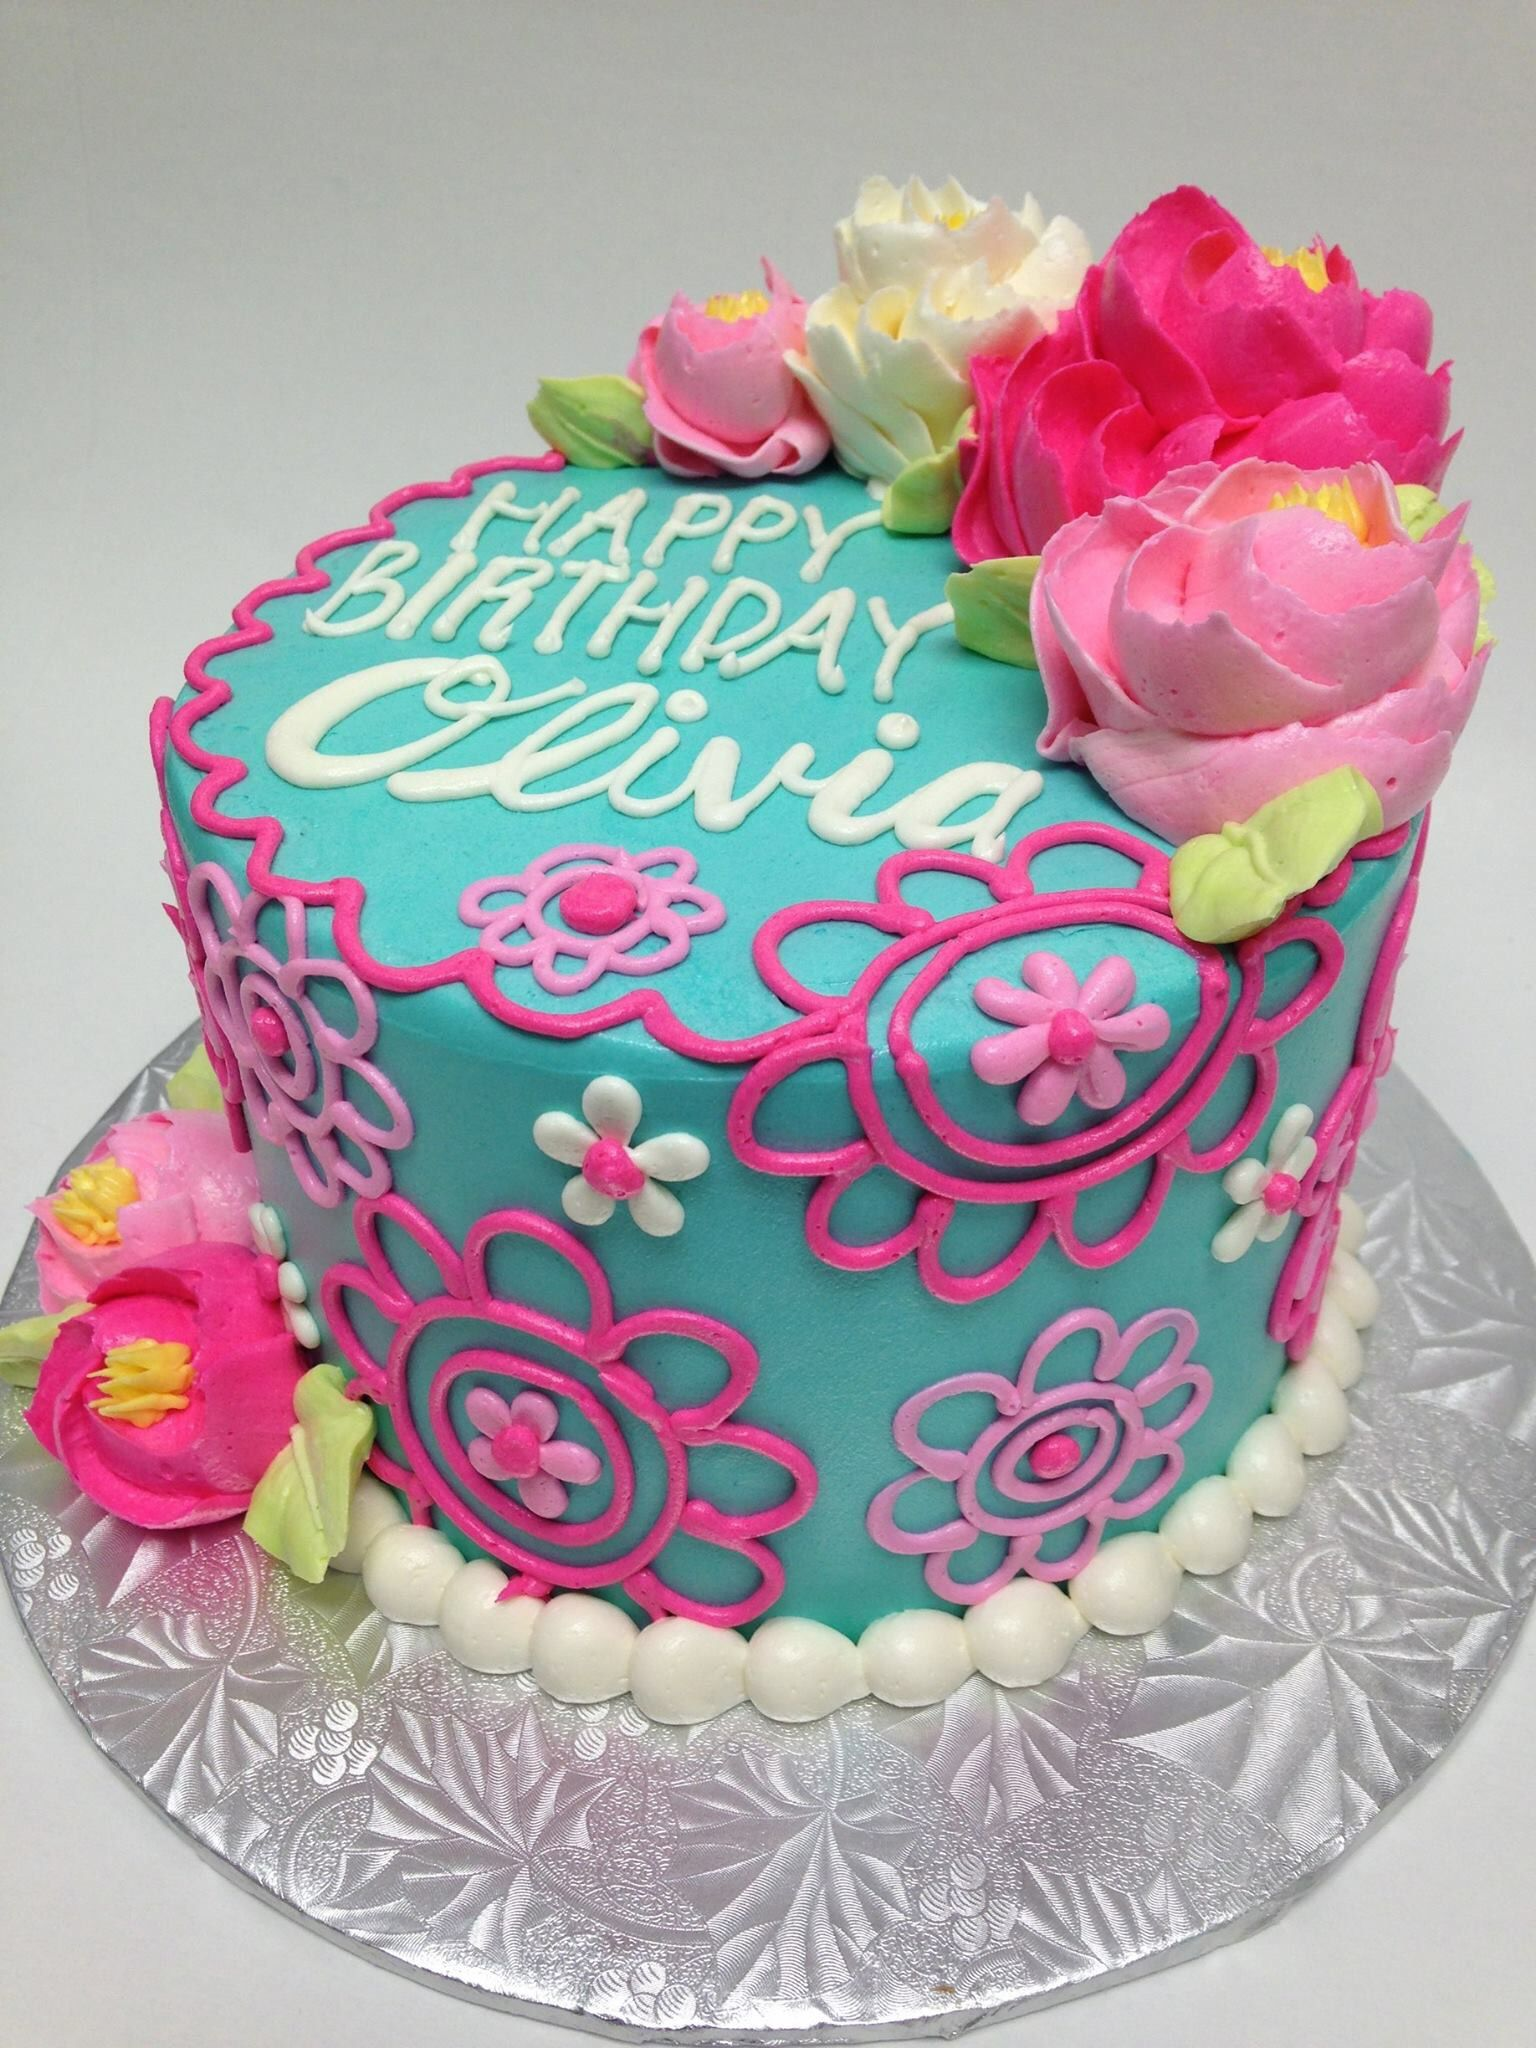 Remarkable Piping Cake Must Try With Images Buttercream Birthday Cake Funny Birthday Cards Online Hendilapandamsfinfo